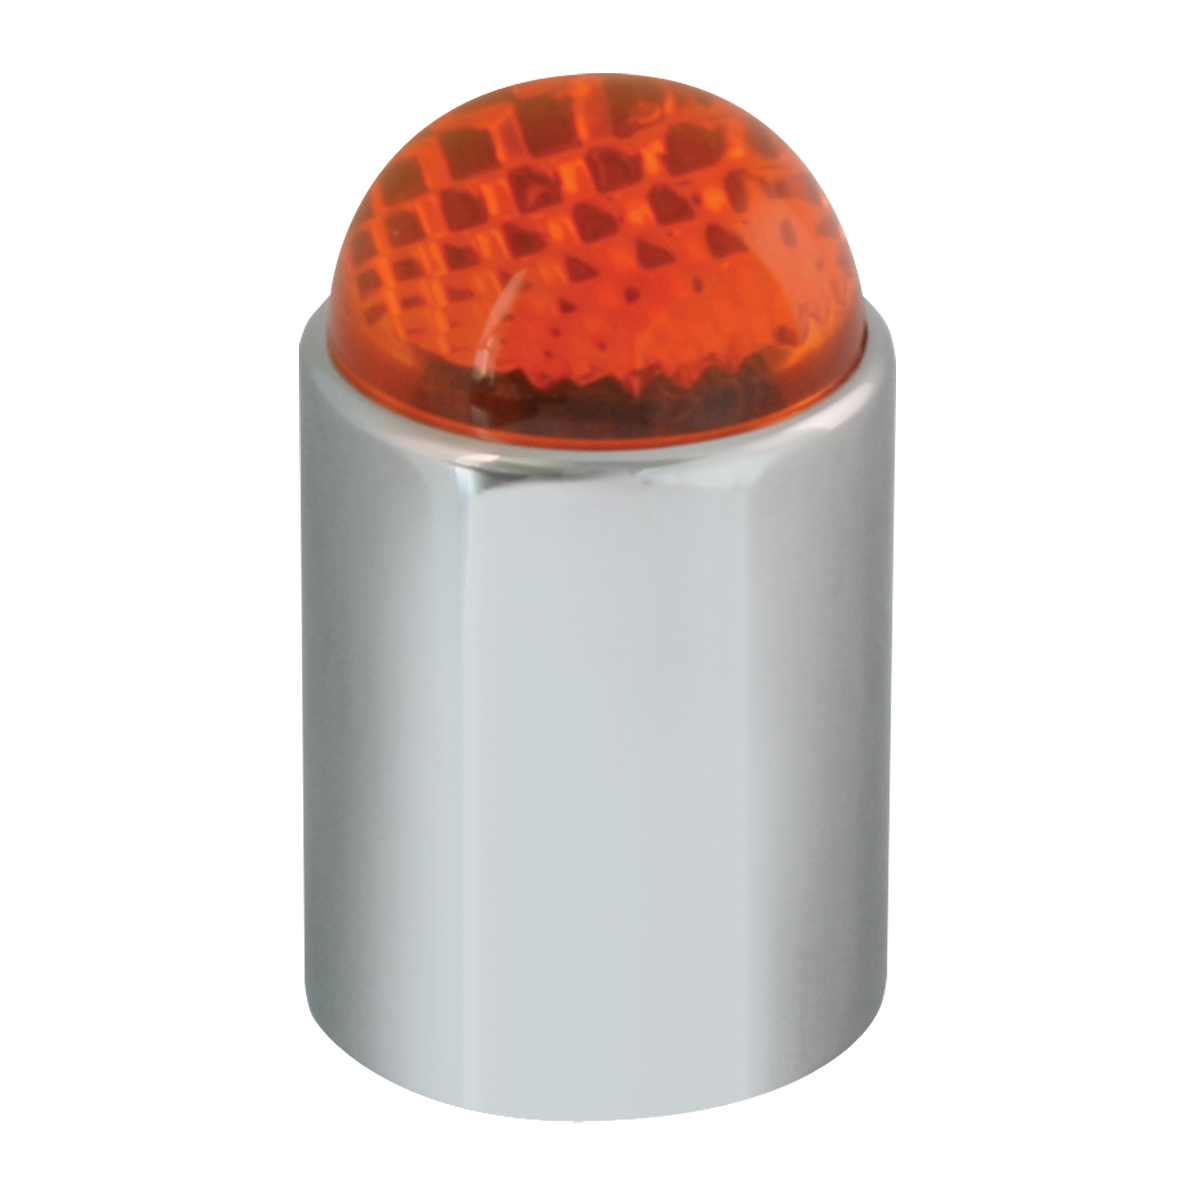 #94730 Amber Full Moon Lens with Stainless Steel Cap